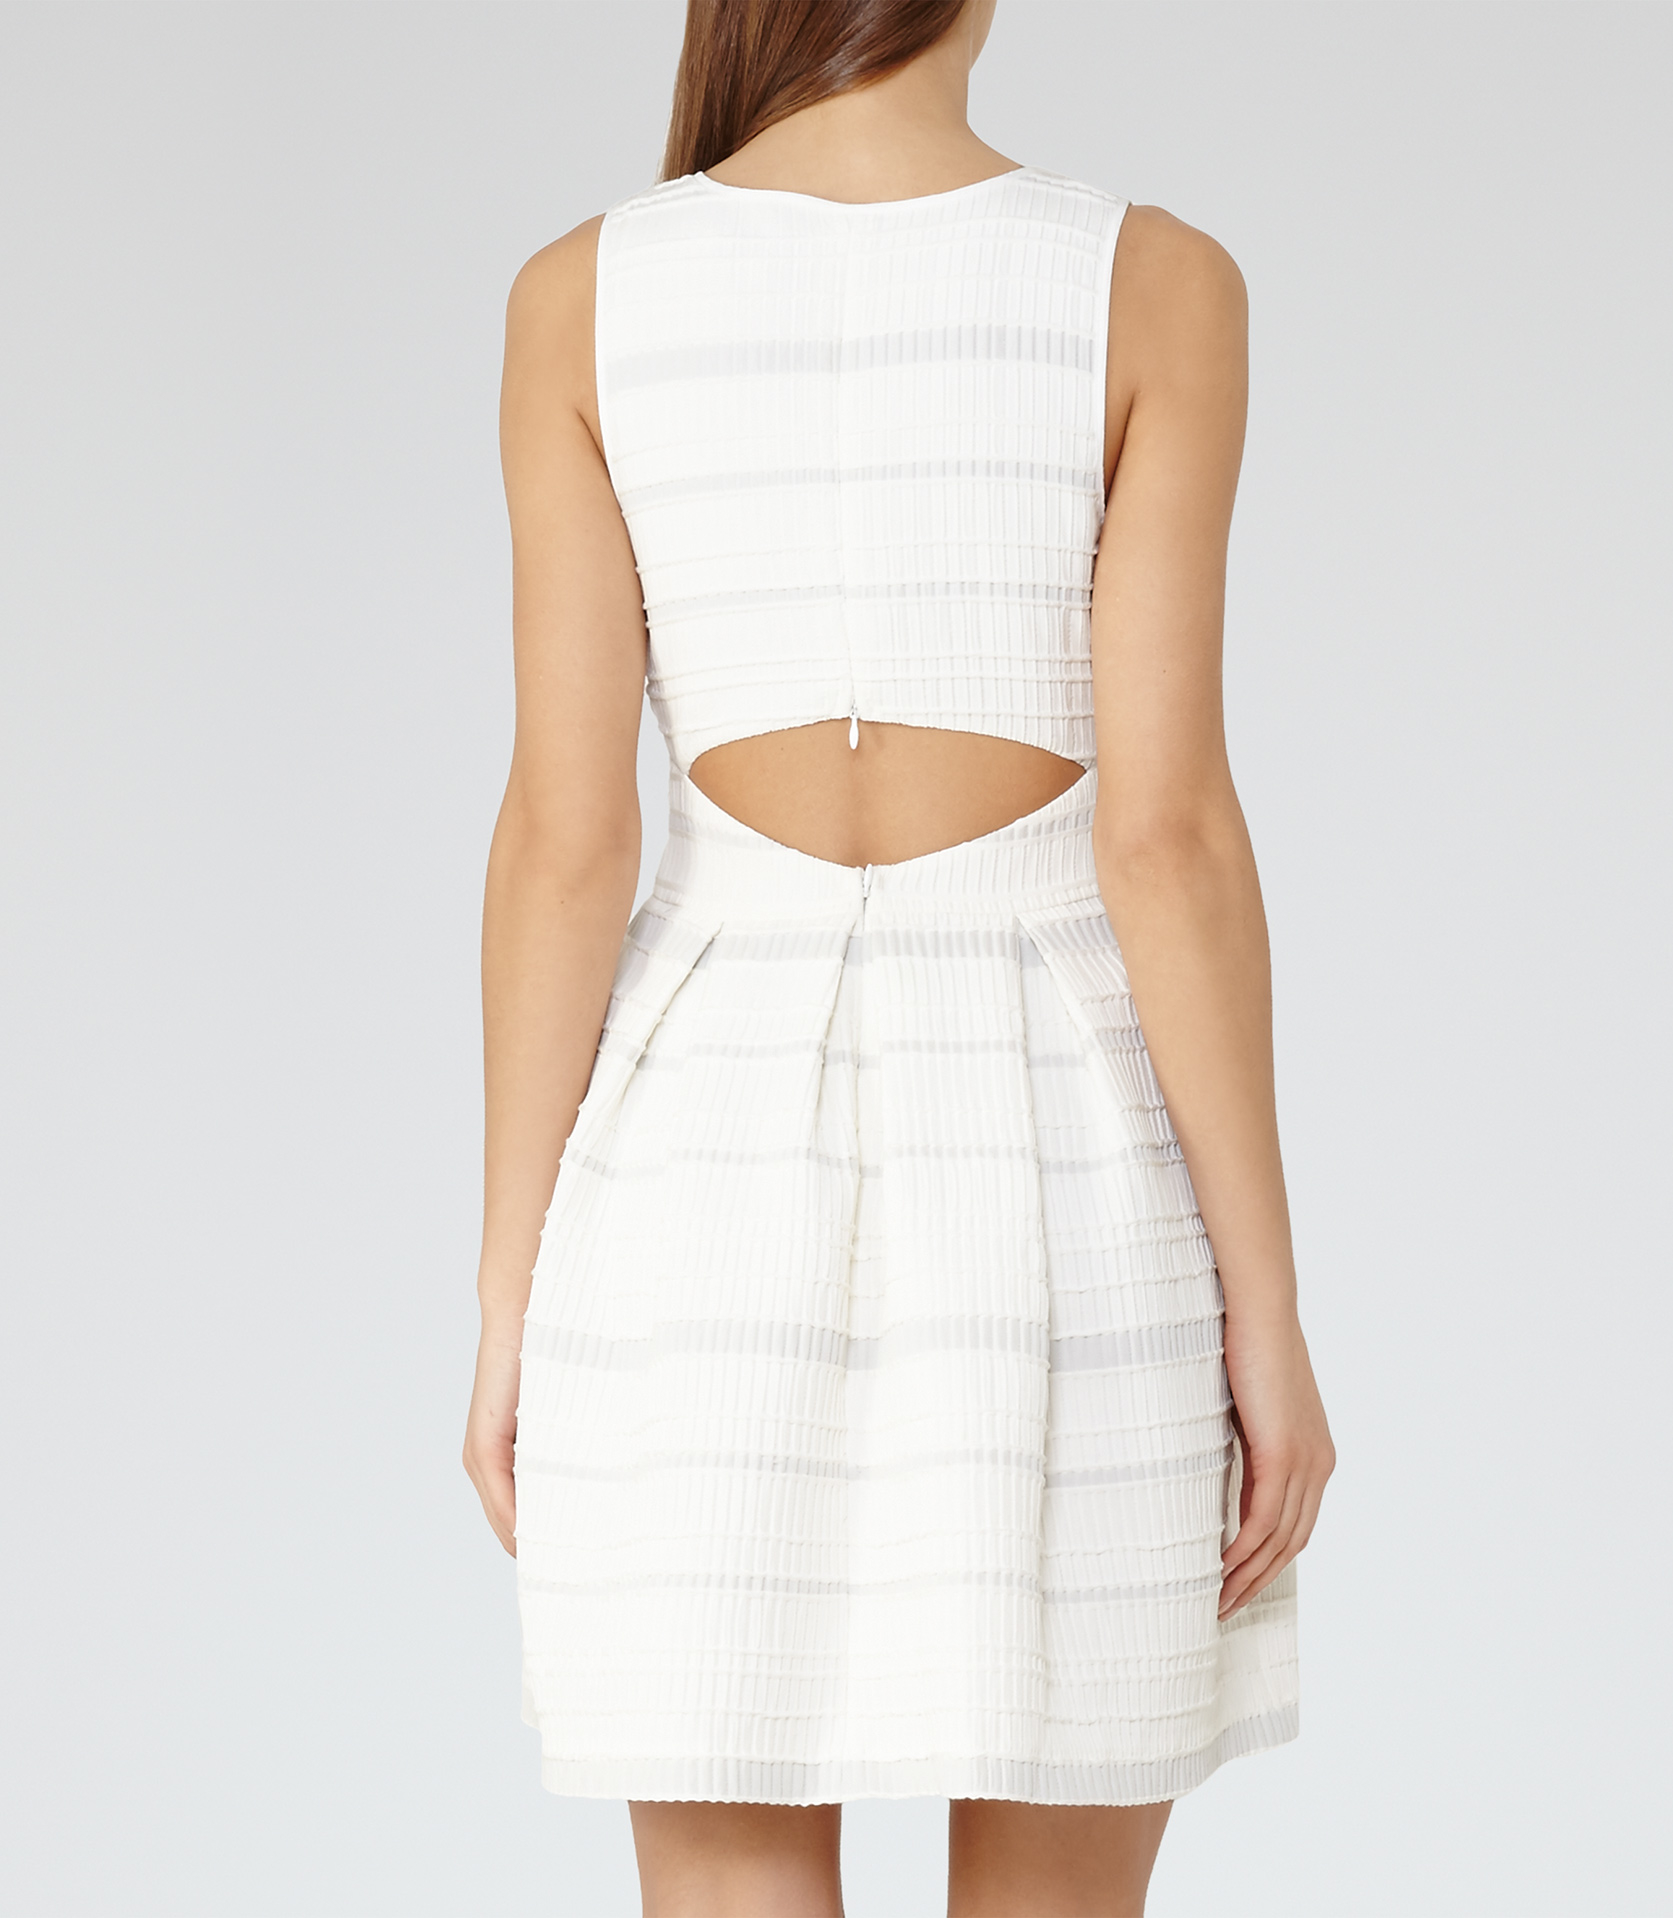 073a045aa59 Reiss Maddox Open-back Dress in White - Lyst